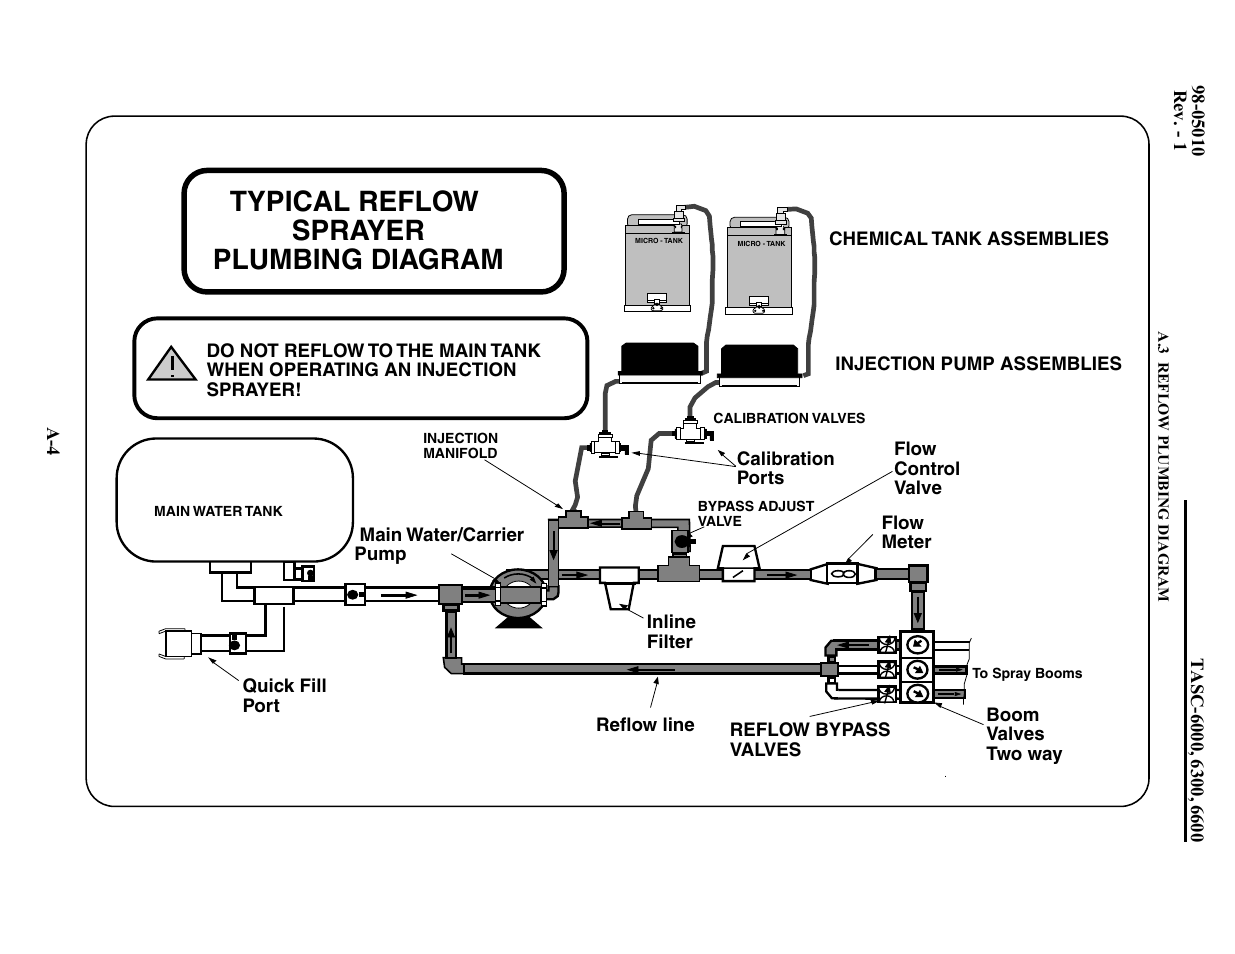 hight resolution of typical reflow sprayer plumbing diagram teejet tasc 6600 user manual page 50 78